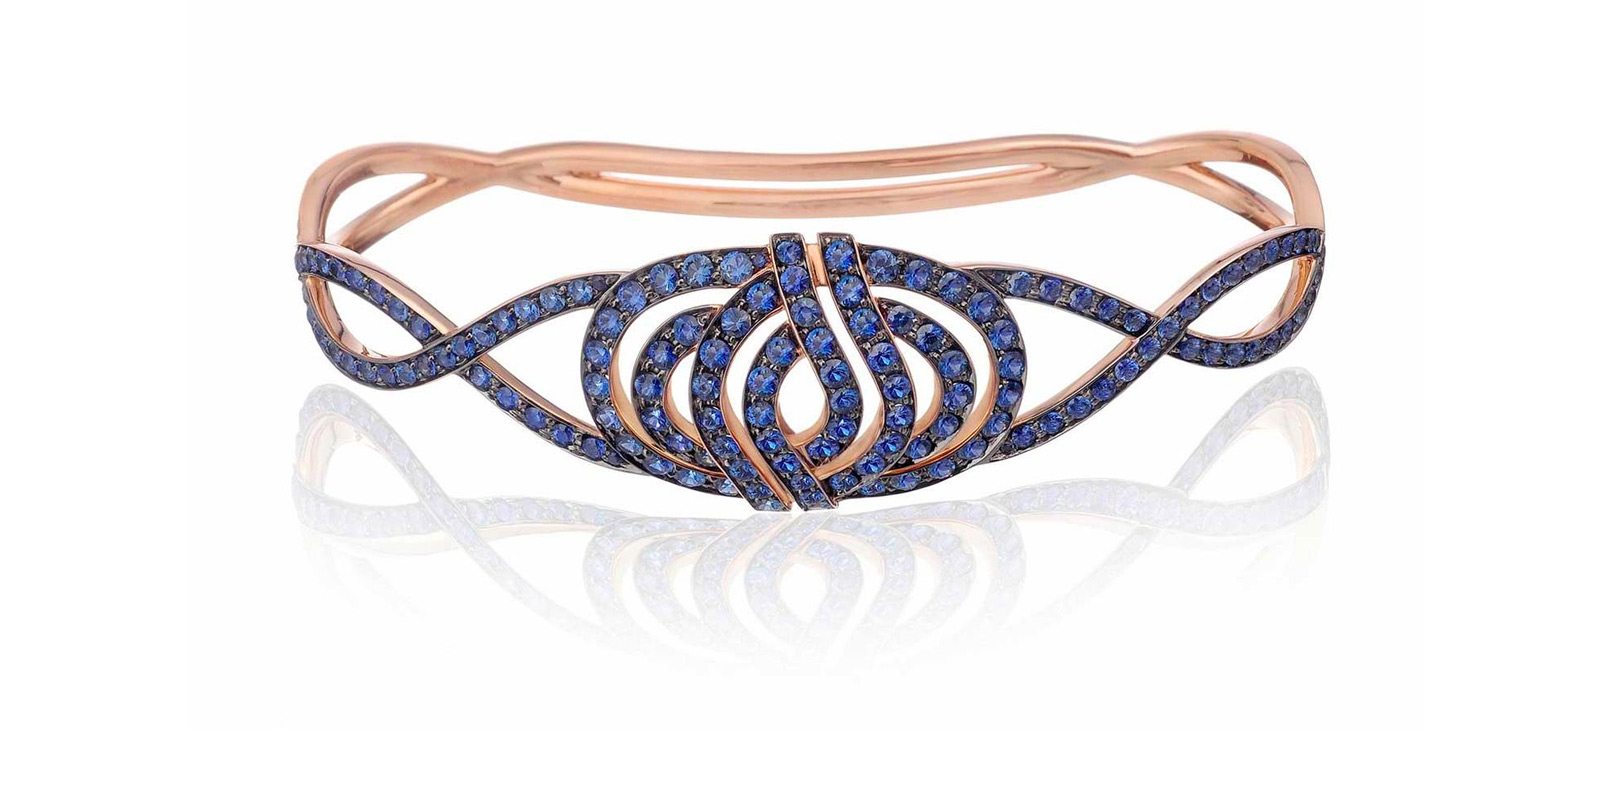 Lily Gabriella Infinitas palm bracelet with sapphires